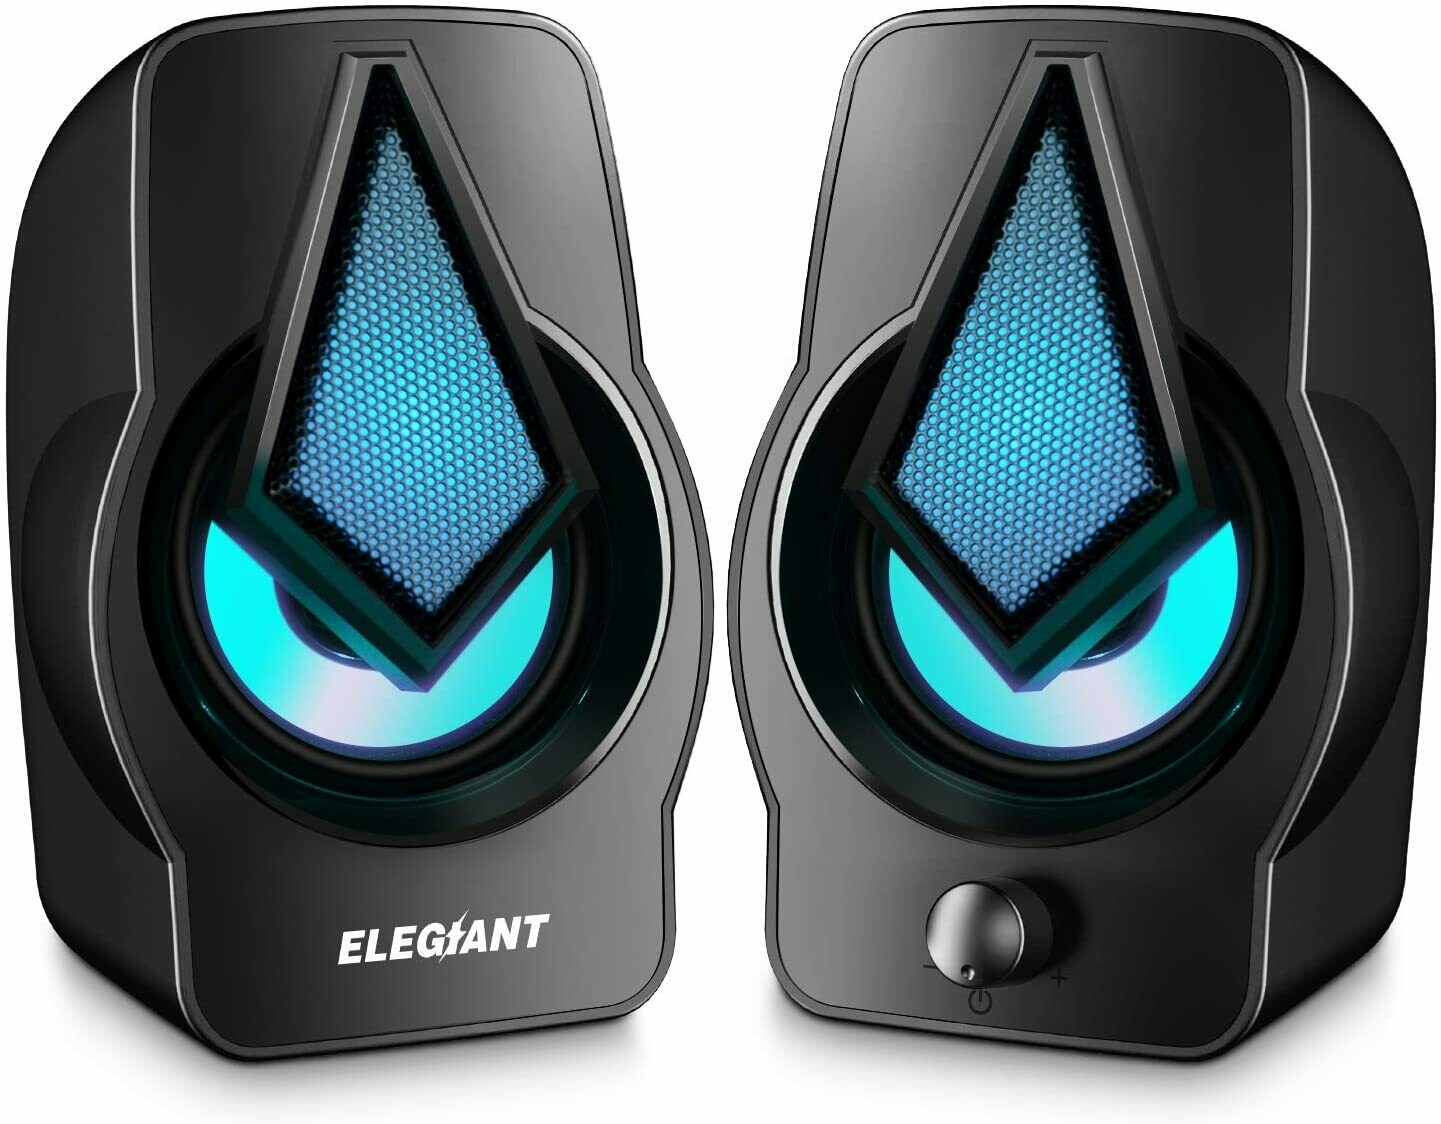 ELEGIANT USB Speakers - RGB Speakers with multi-light modes - USB powered stereo speakers for PC and laptops